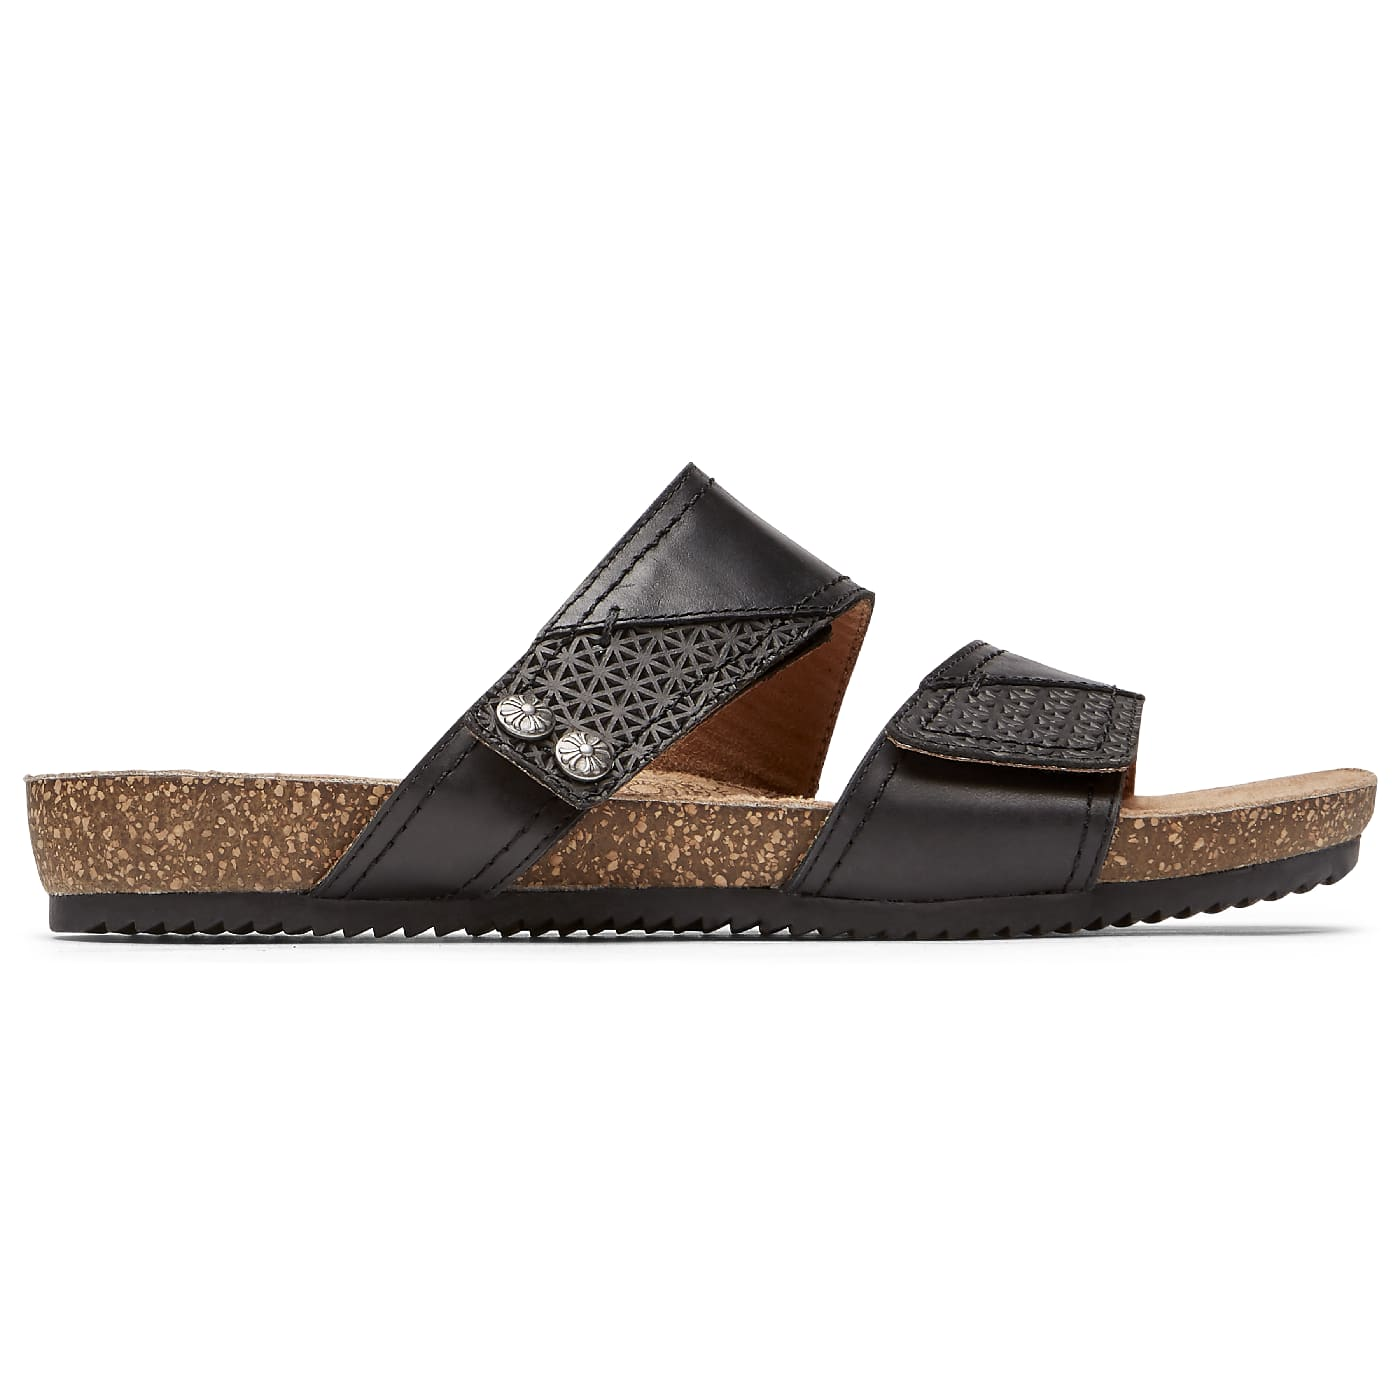 Rockport Women's Shoes: Cobb Hill Trinity Slide Sandal, Marah Lace Sandal, Let's Walk Bungee Sneaker & More 2 for $59 ($29.50 each) + Free Shipping